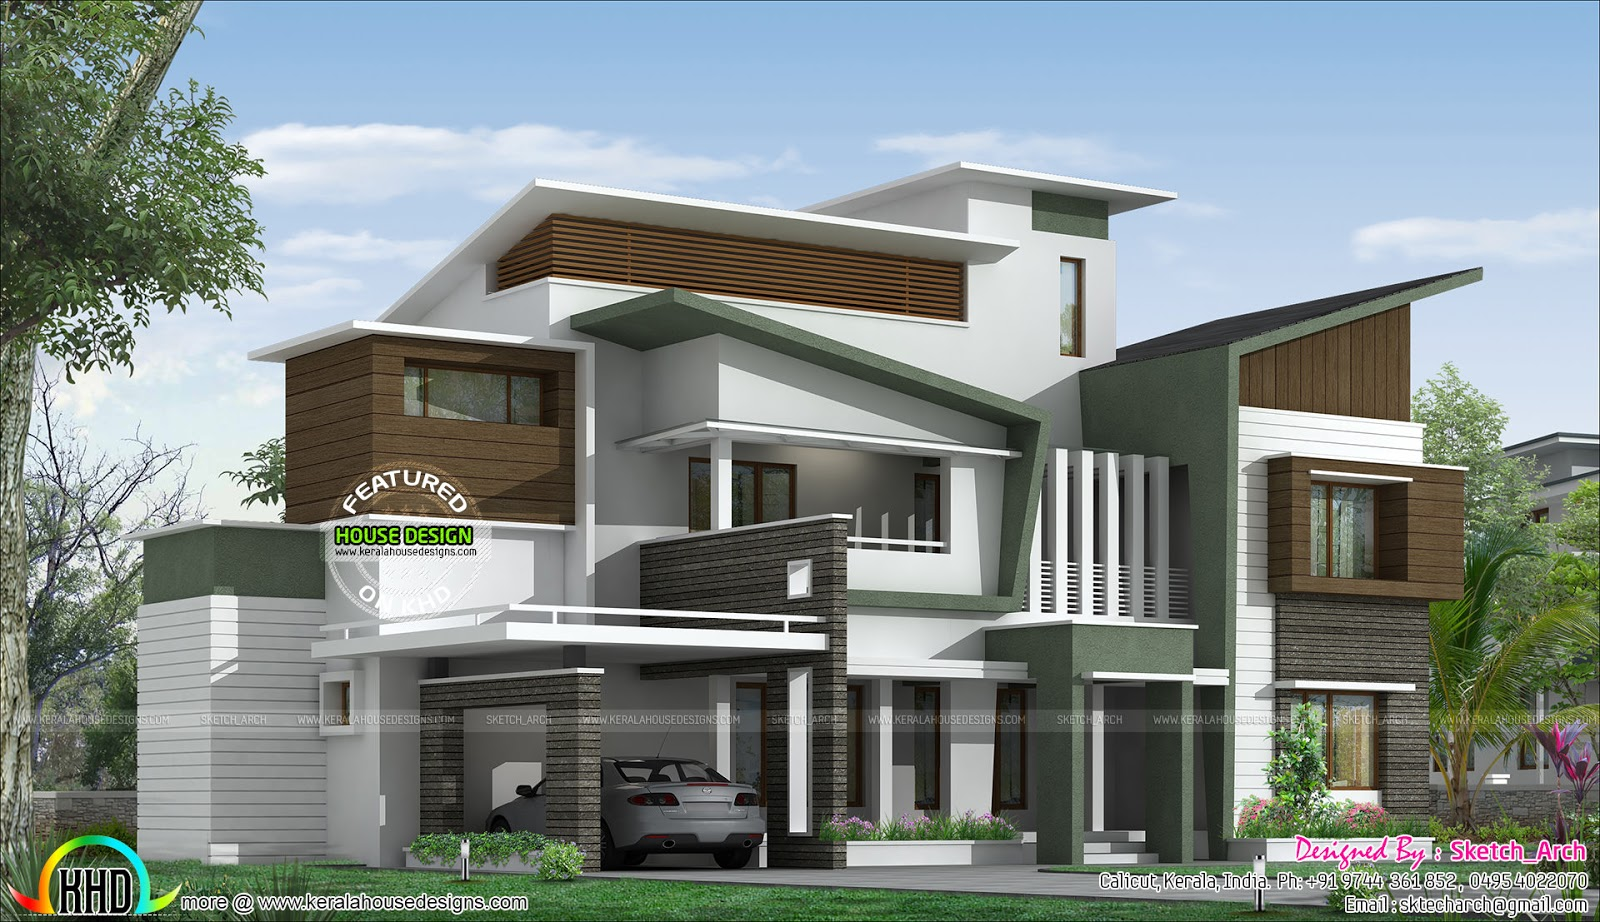 Box type house design modern box type bungalow philippines for House design service